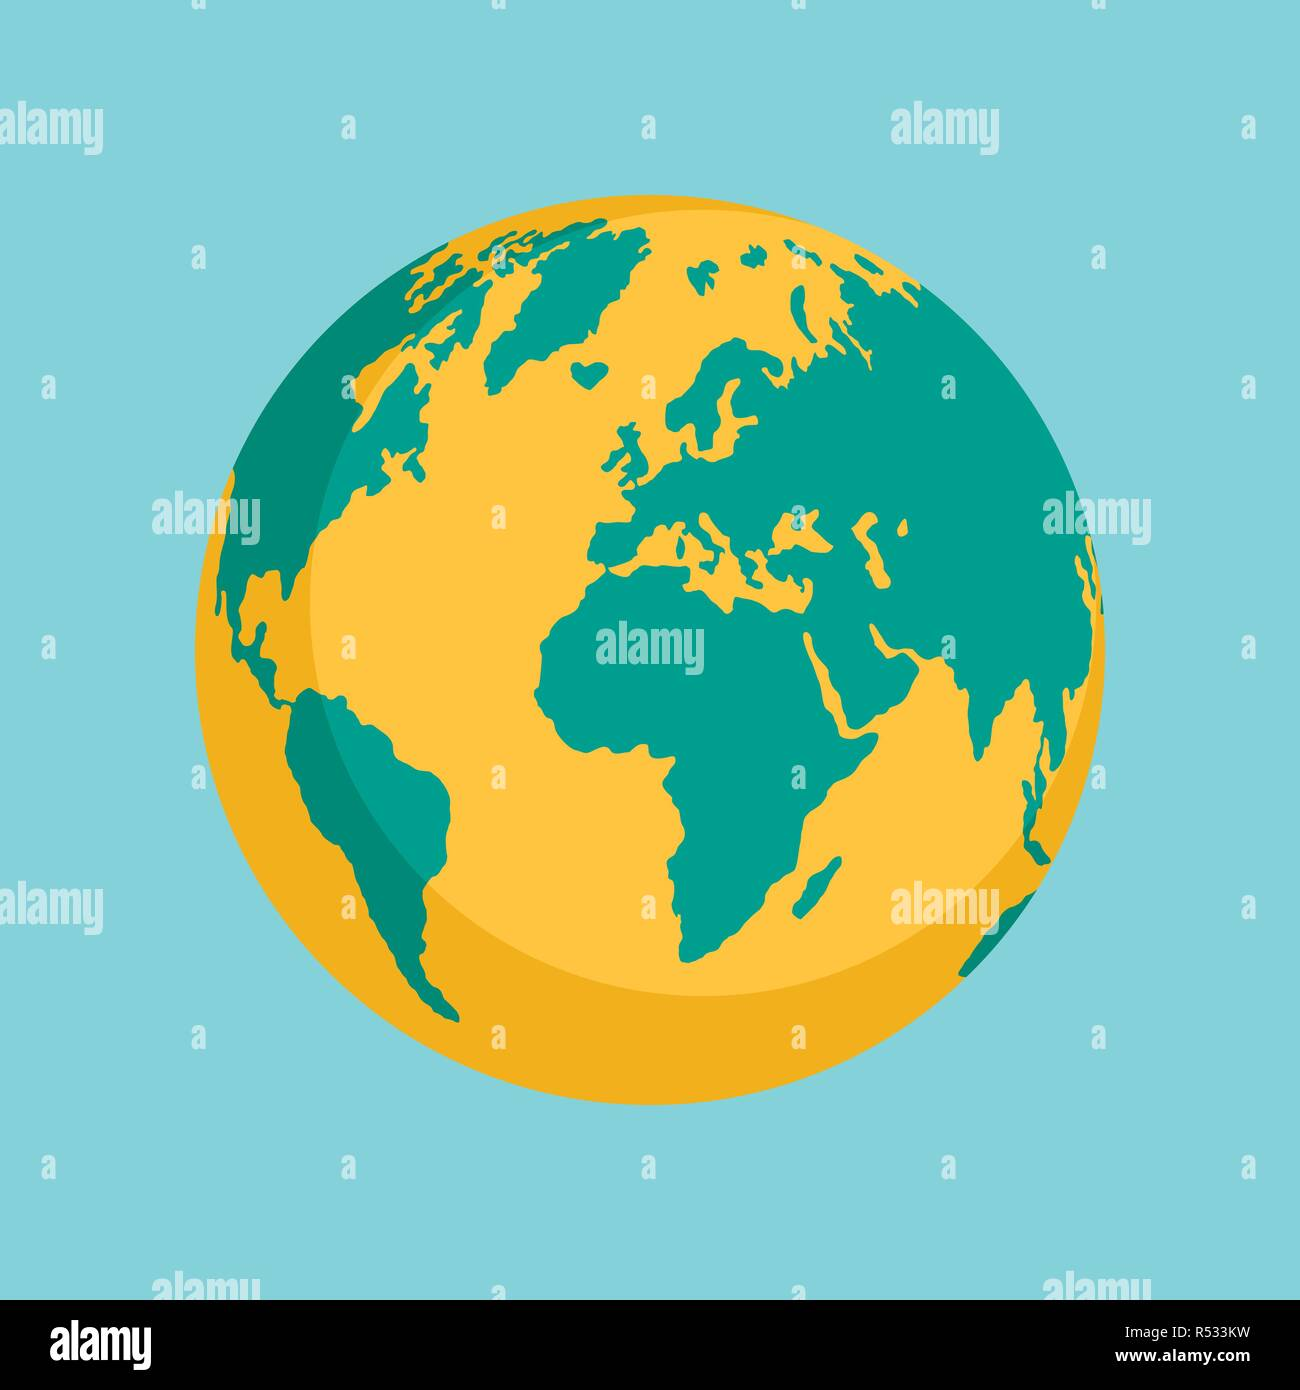 Earth Icon Flat Illustration Of Earth Vector Icon For Web Design Stock Vector Image Art Alamy Free for commercial use no attribution required high quality images. https www alamy com earth icon flat illustration of earth vector icon for web design image226876829 html